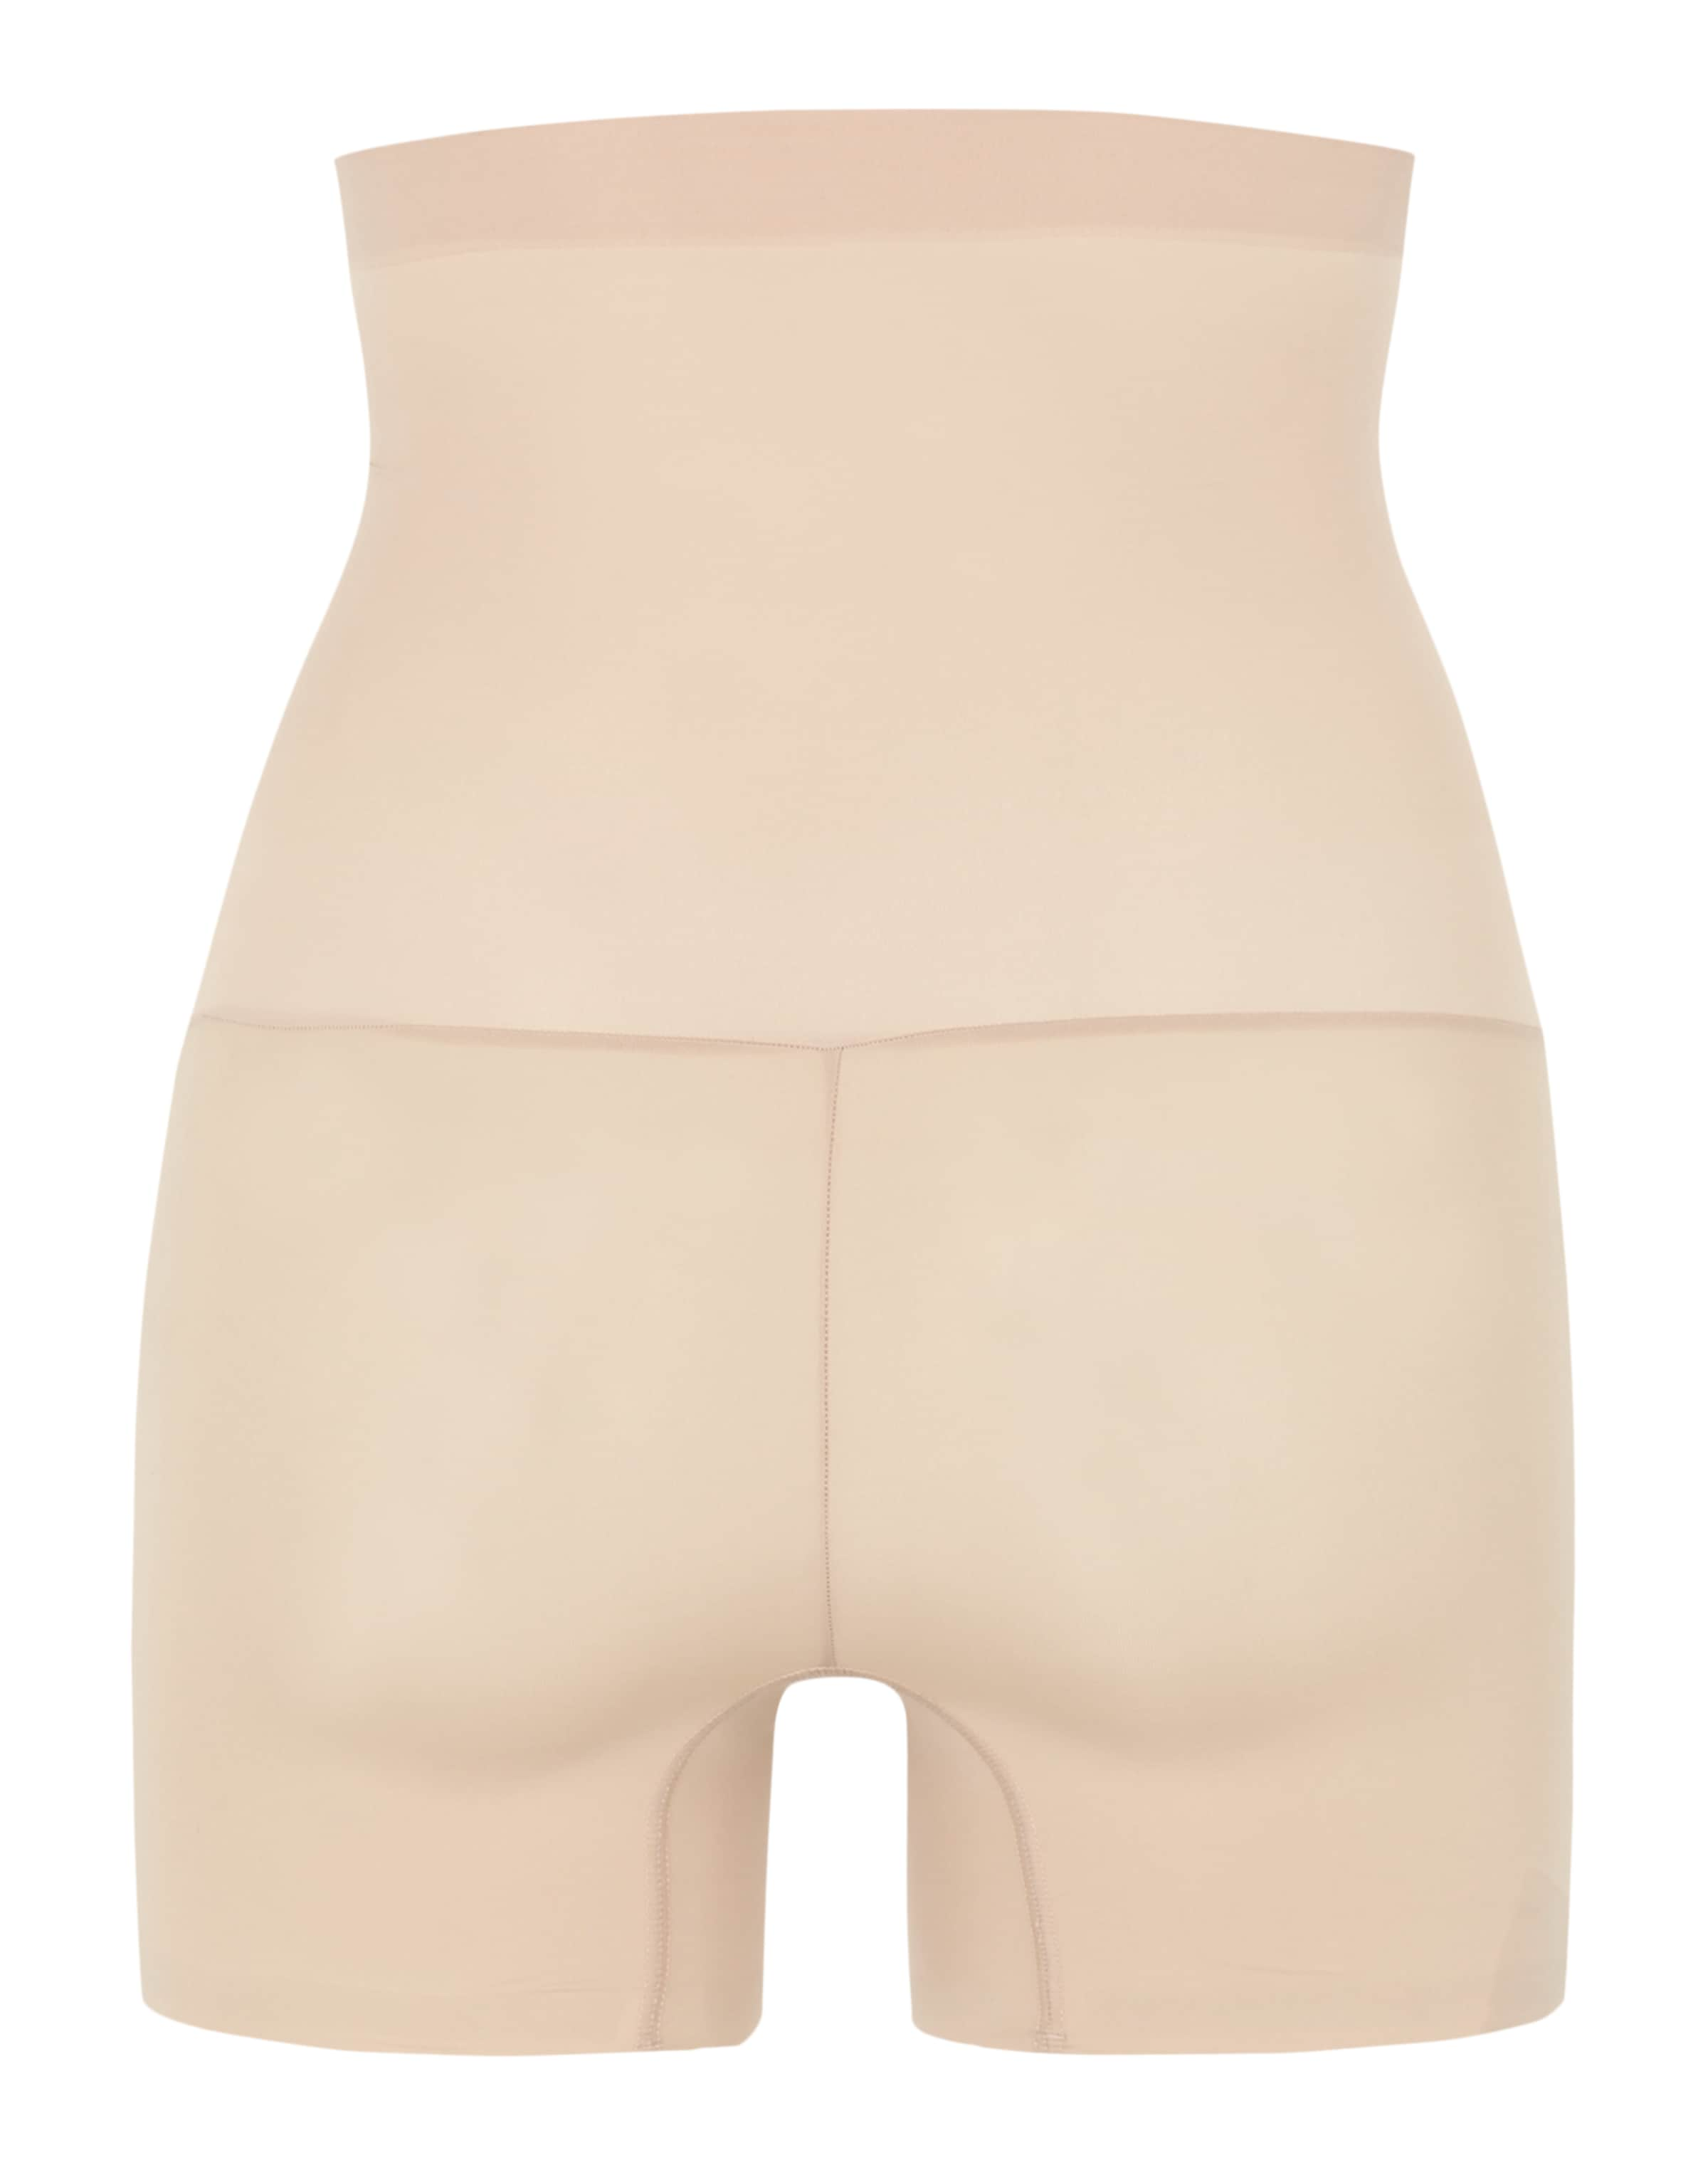 'shape Nude My Shorts Spanx Day' Waist In High 0wPknO